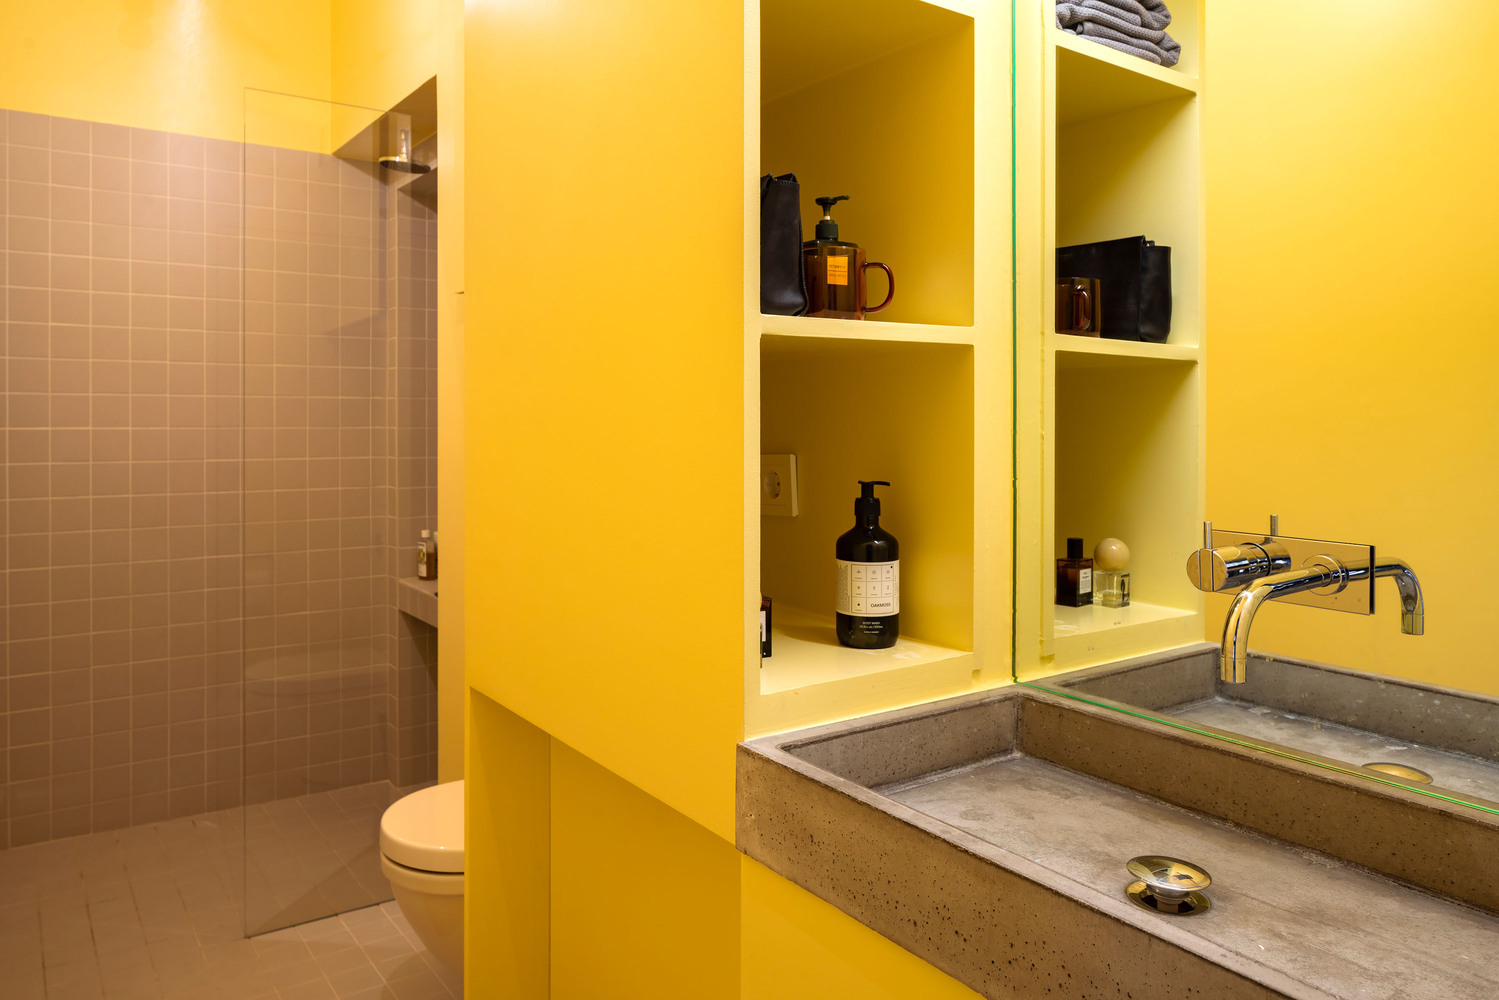 The bathroom has a built-in storage wall which gives the room a wholesome and organized look